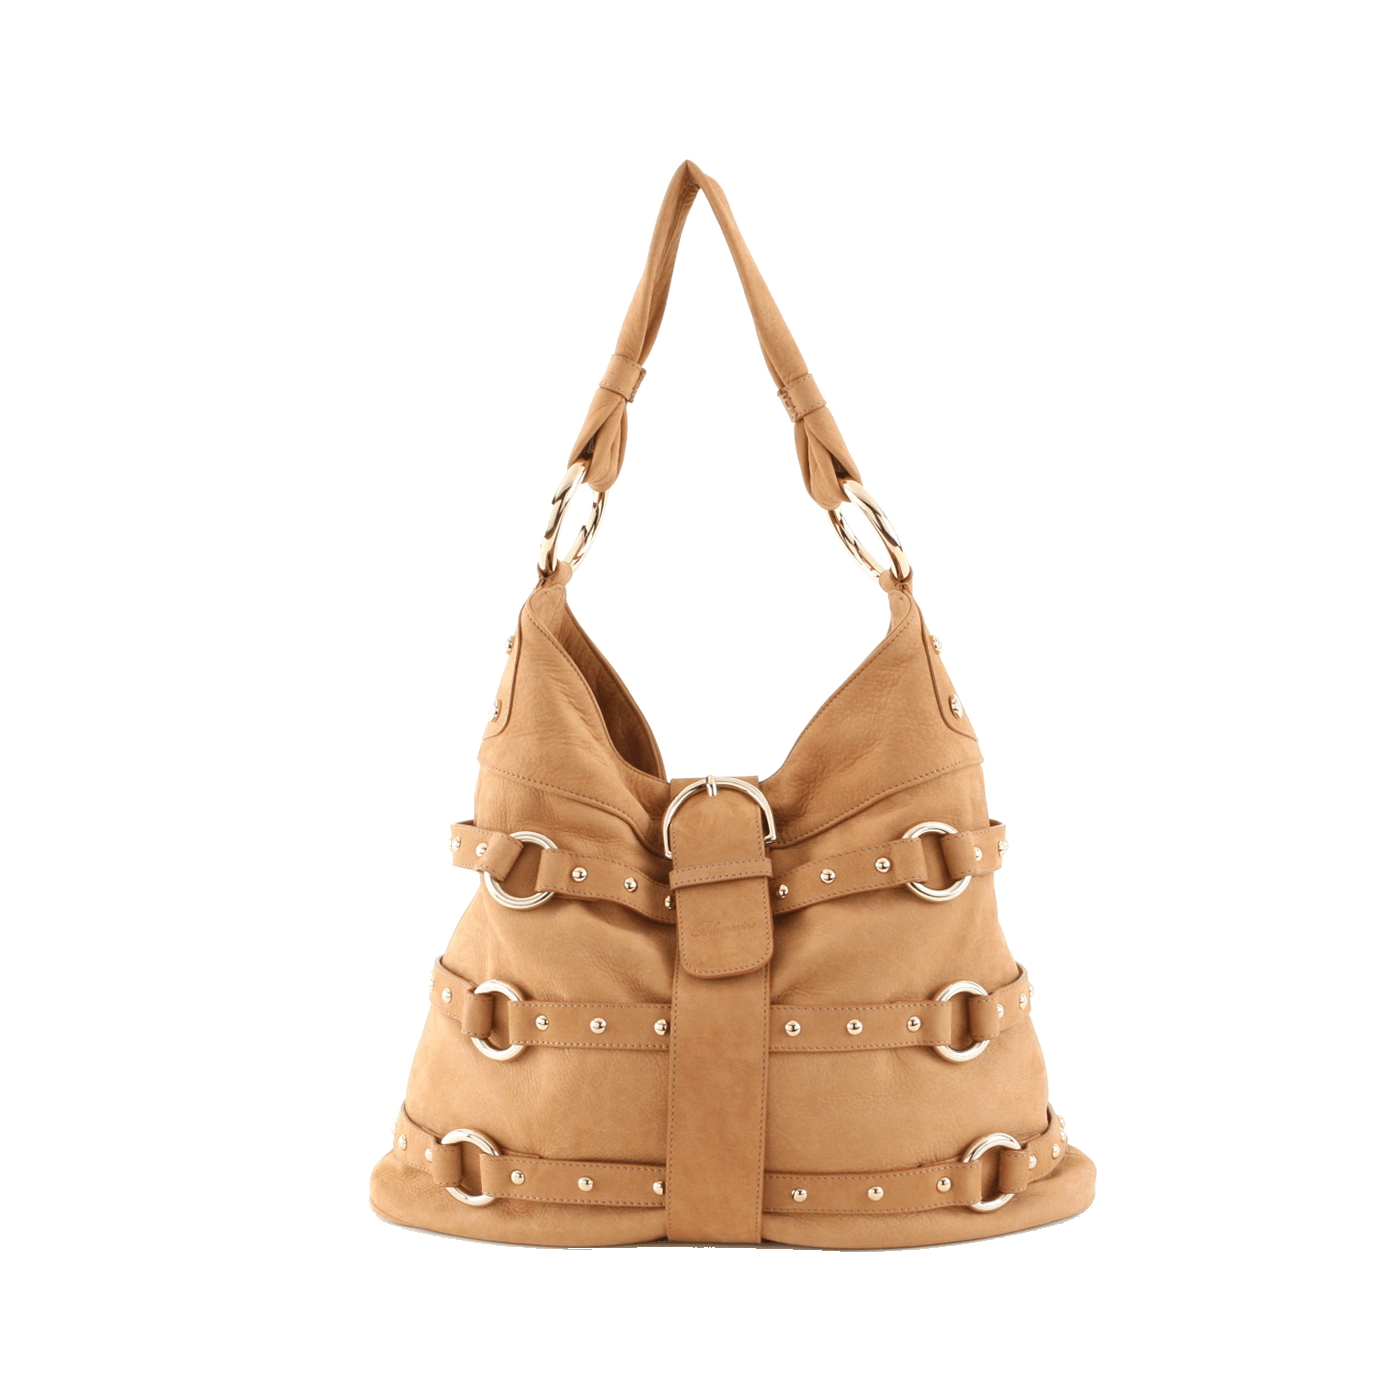 BETTI BAG